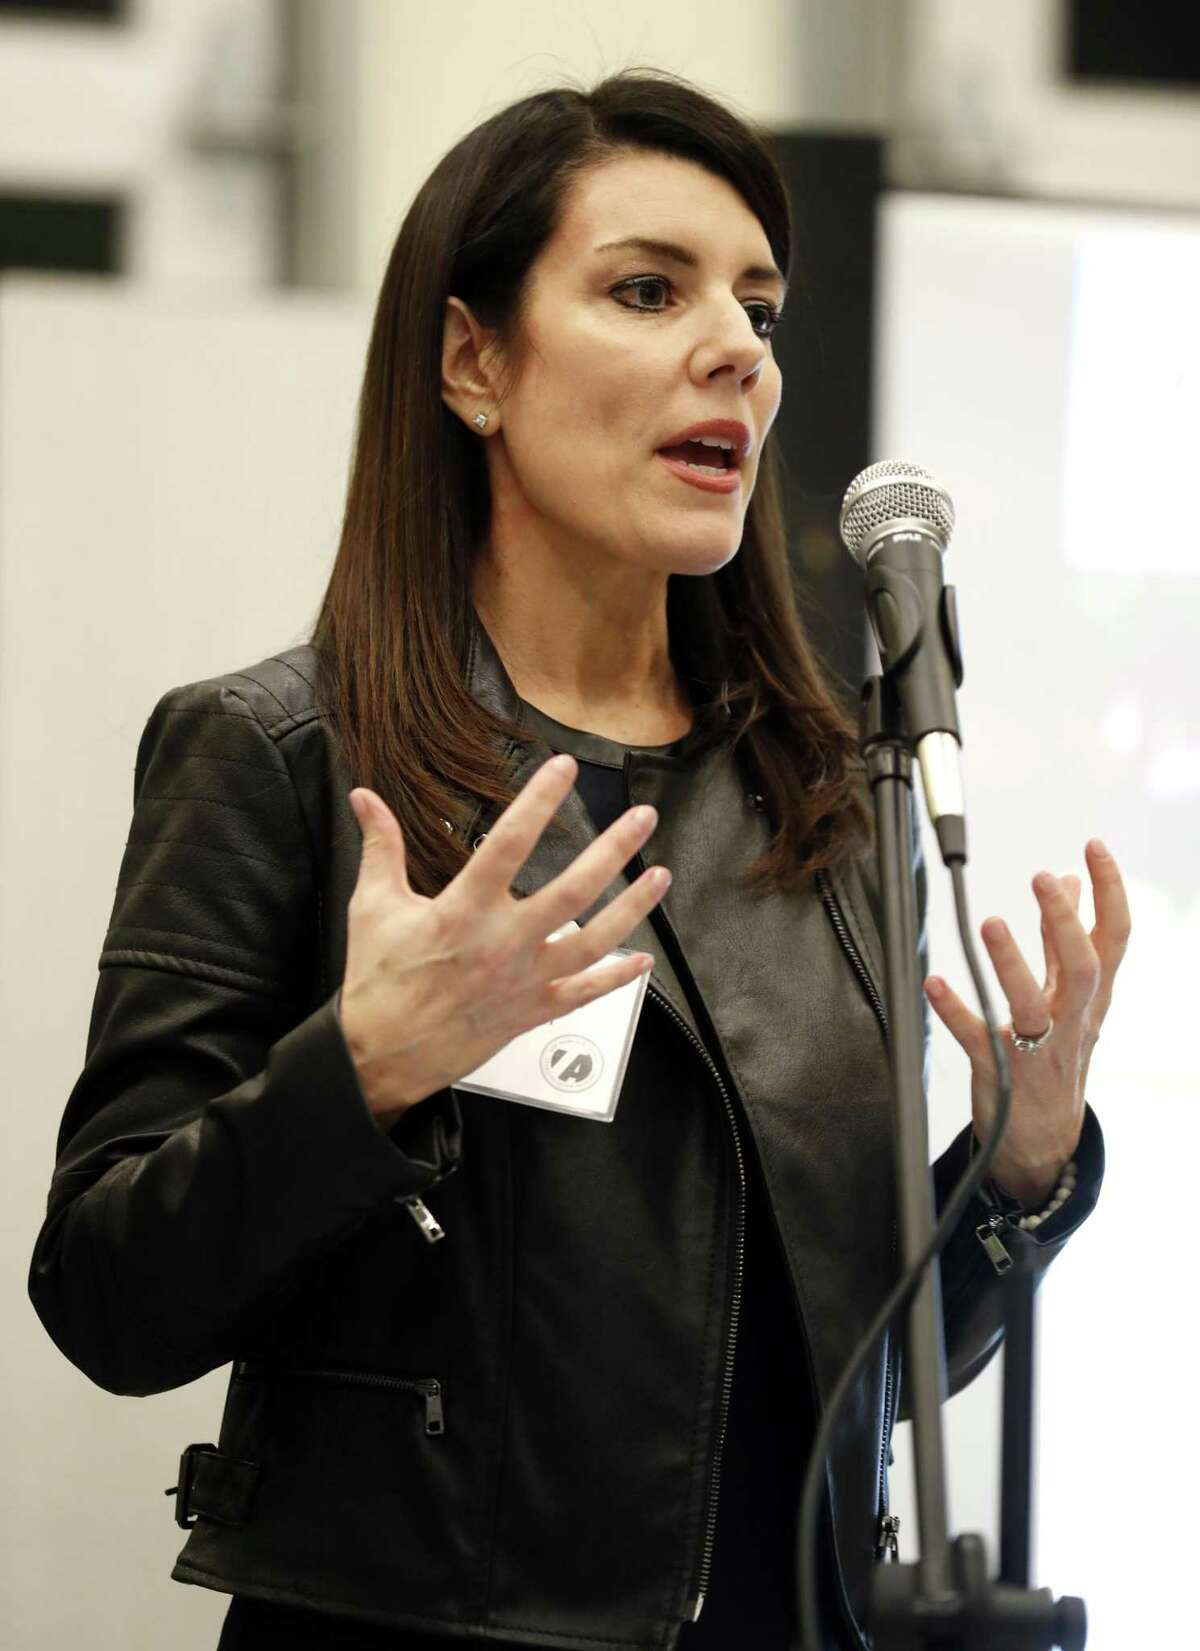 San Francisco Supervisor Catherine Stefani wants the city to make better use of a state law that allows gun seizures.Stefani penned a resolution that was passed by the Board of Supervisors Tuesday declaring that the National Rifle Association is a domestic terrorist organization.